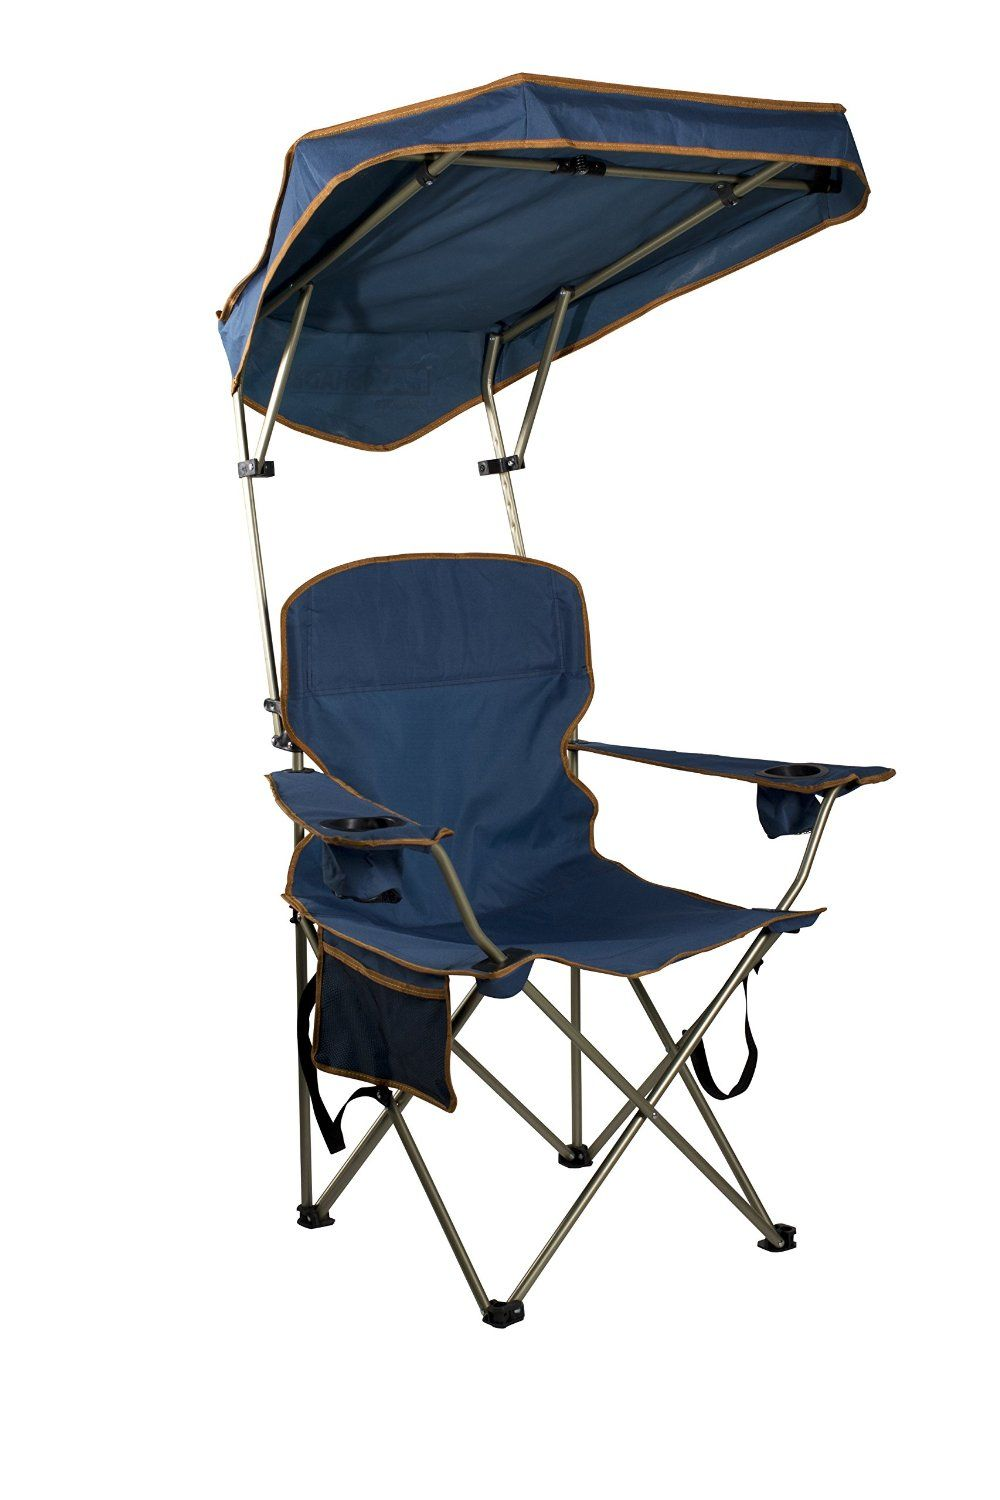 Quik Shade MAX Shade Chair u003eu003eu003e You can find out more details at the  sc 1 st  Pinterest & Quik Shade MAX Shade Chair u003eu003eu003e You can find out more details at ...